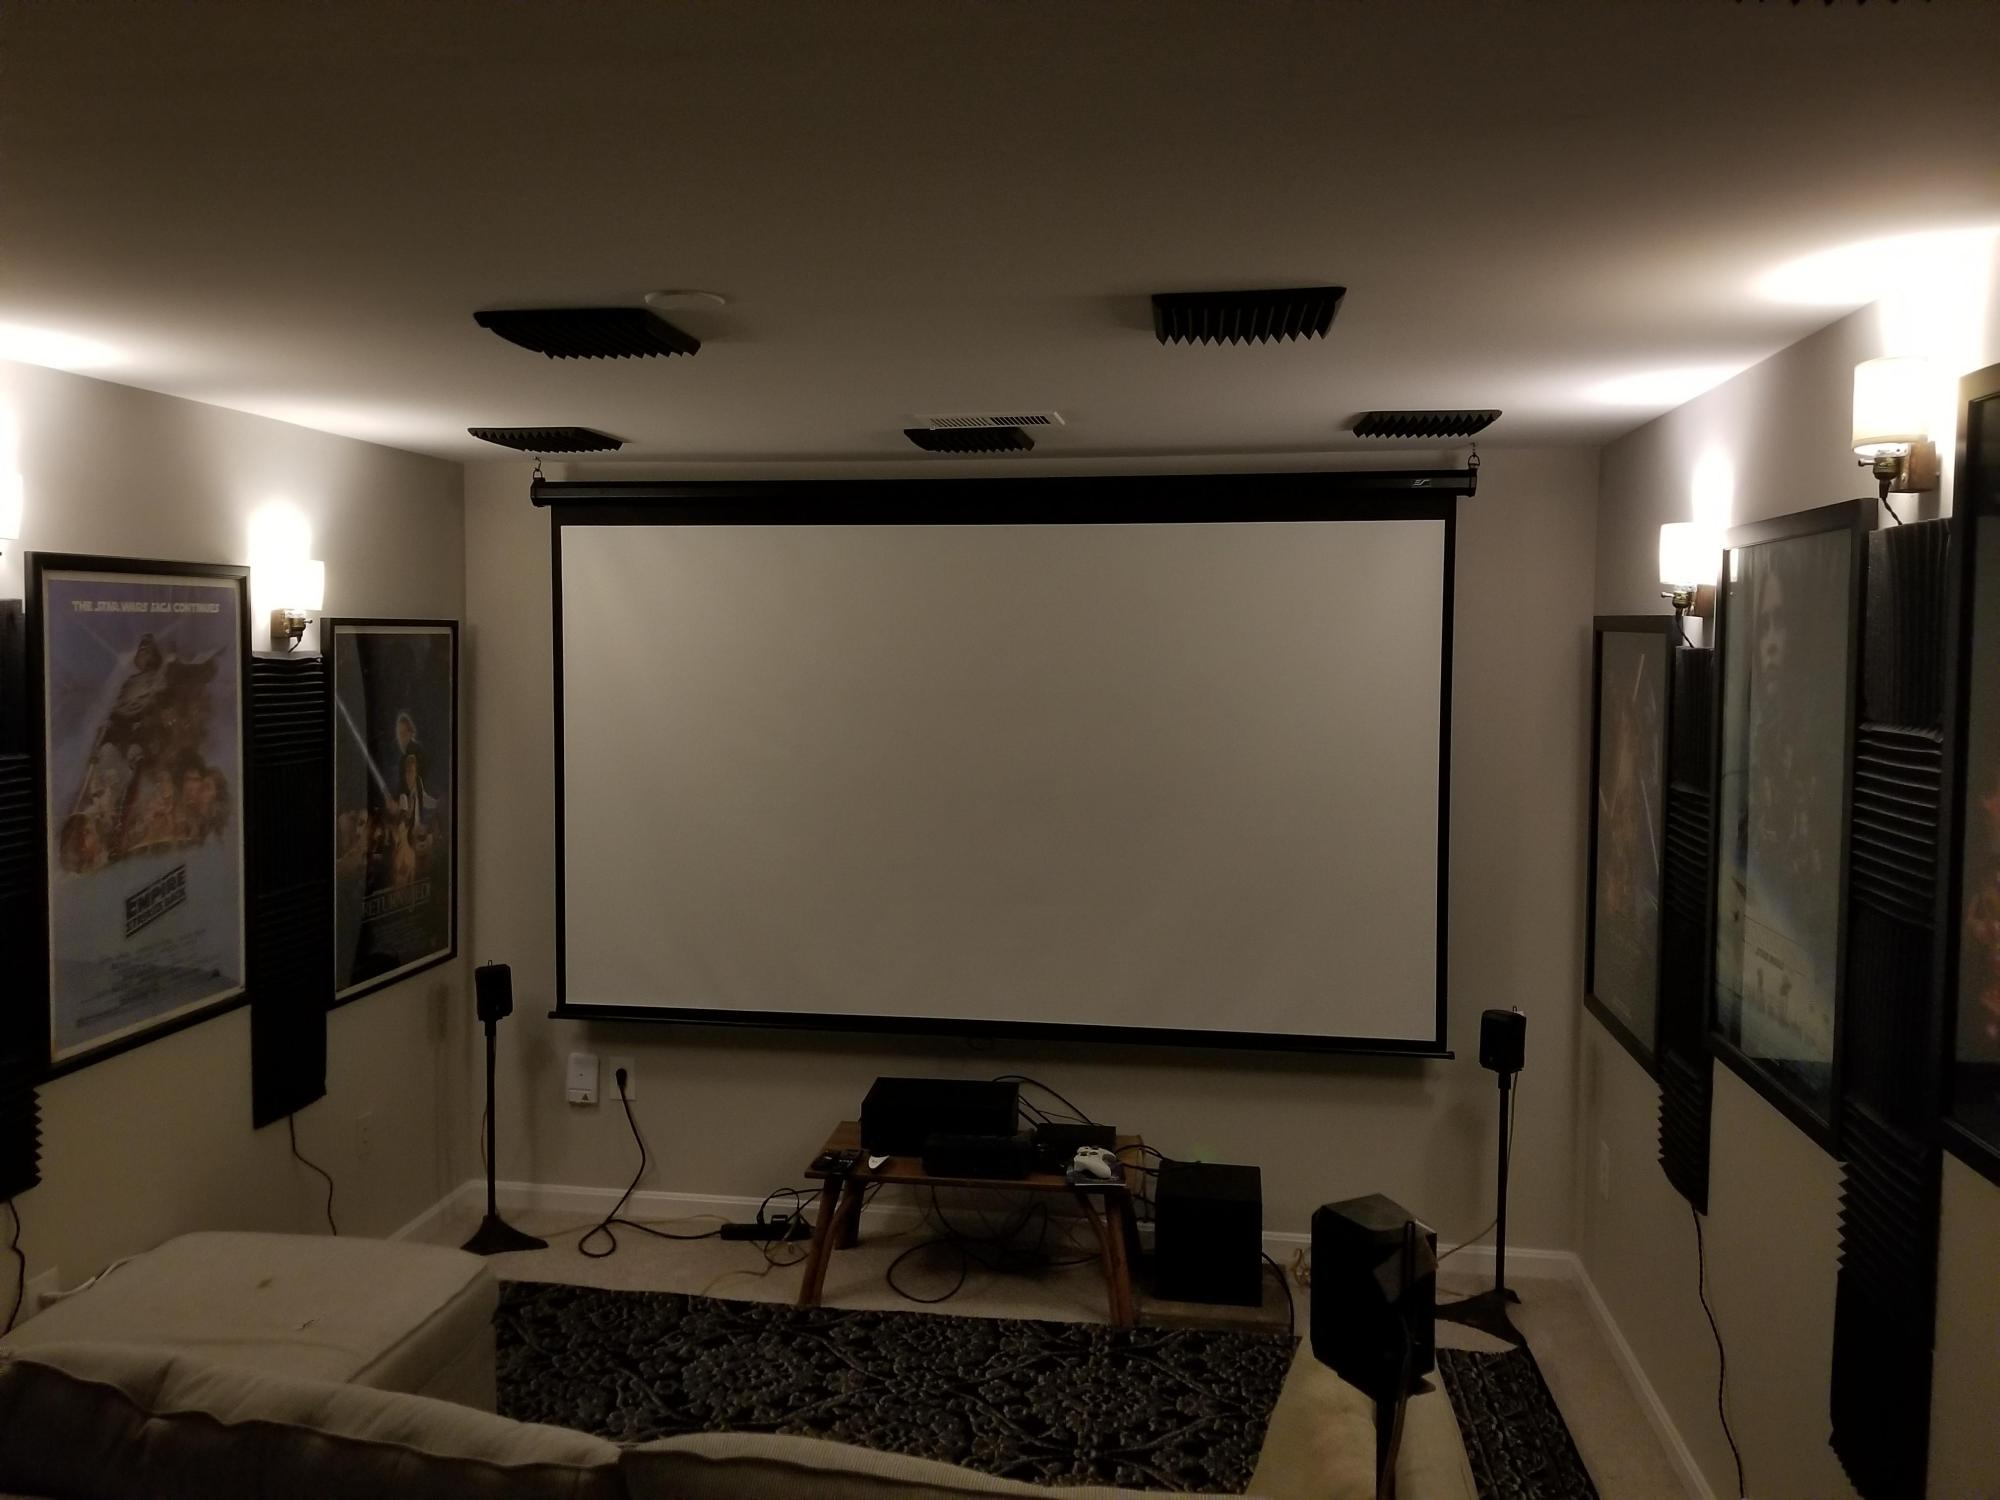 hight resolution of av pornapartment home theater set up i still have some cable management to do